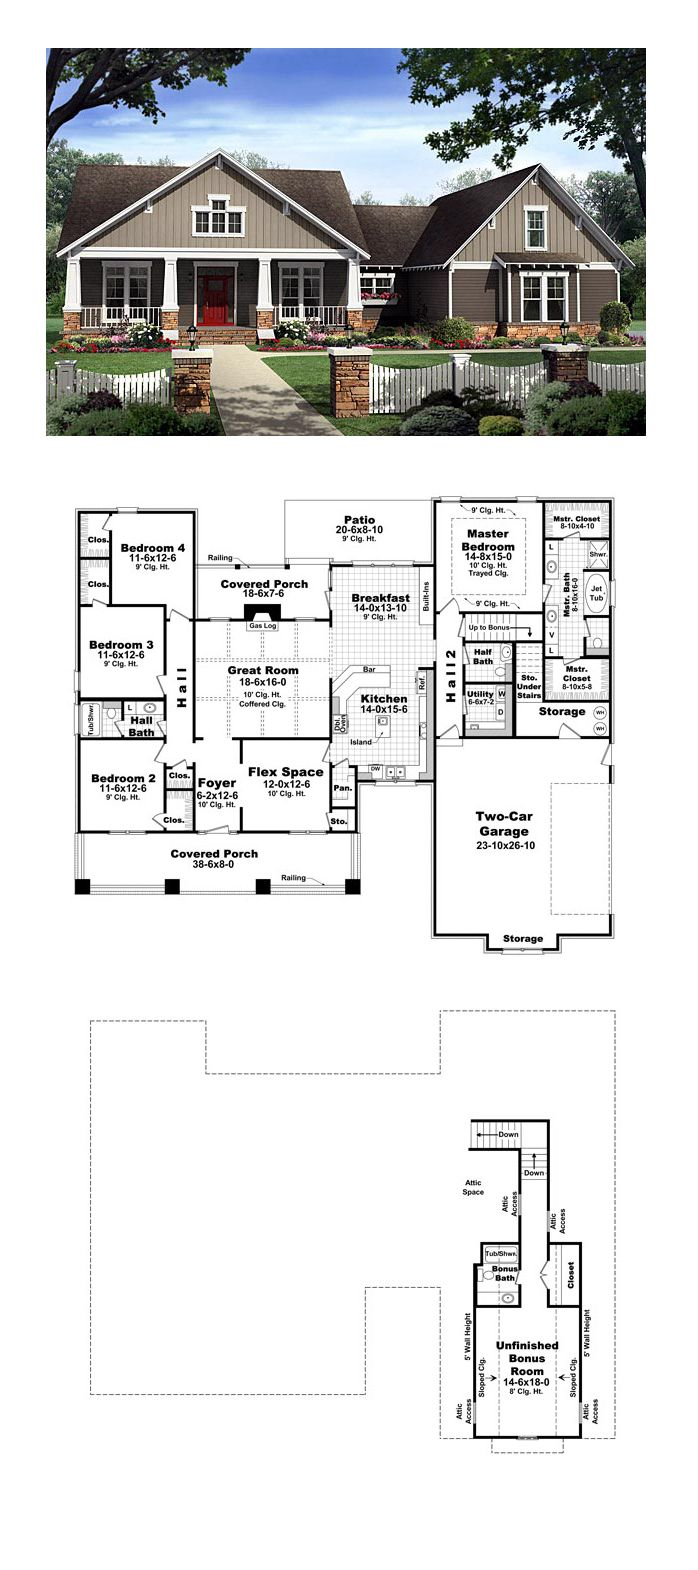 Bungalow Country Craftsman House Plan 59198. 25  best ideas about 4 Bedroom House on Pinterest   4 bedroom